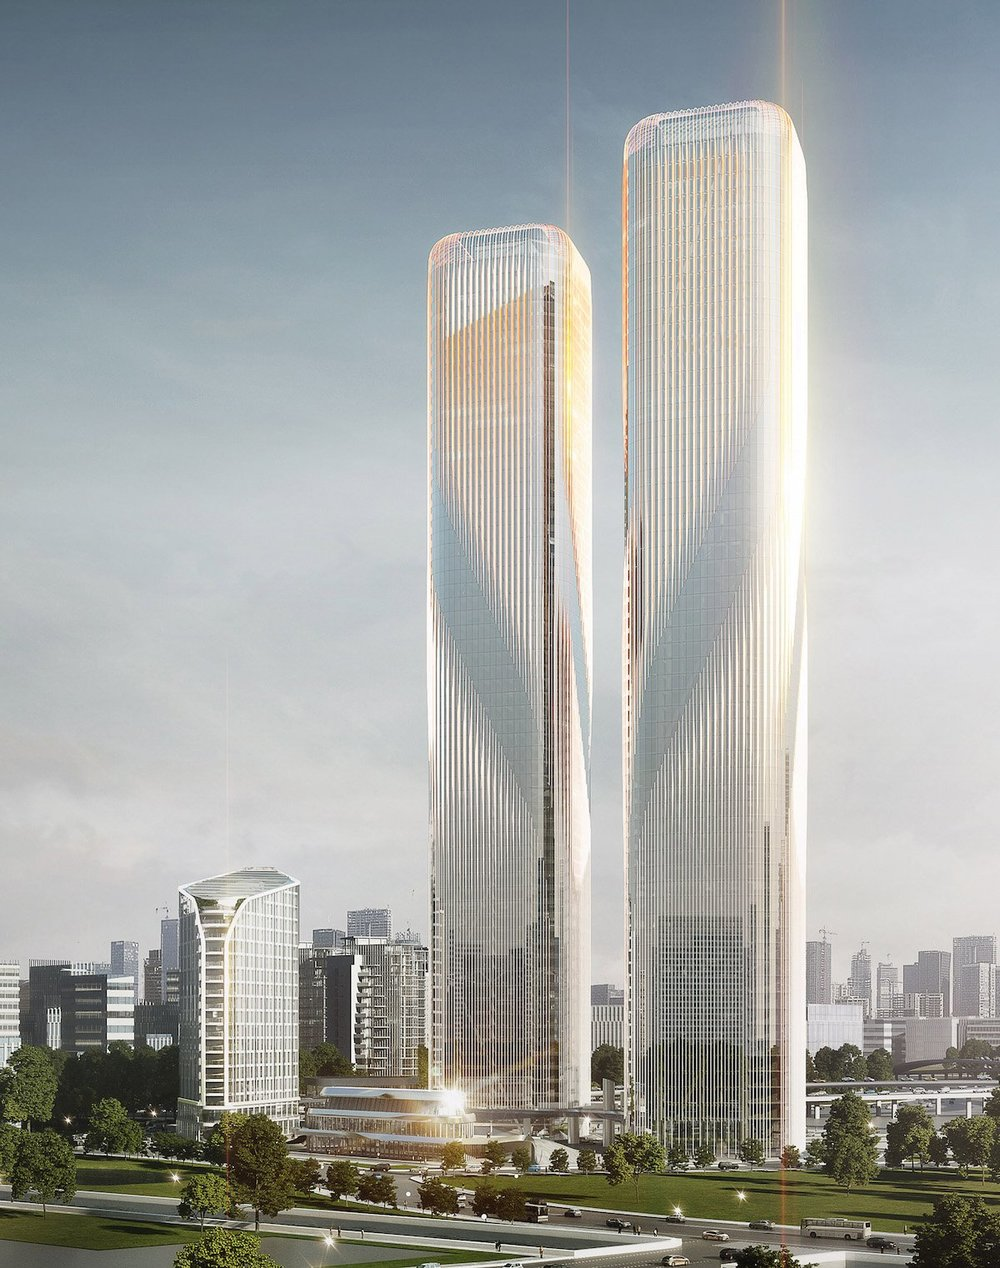 two-beautiful-towers-in-china-will-change-colors-based-on-whre-you-are-standing-thatsitmag7.jpg